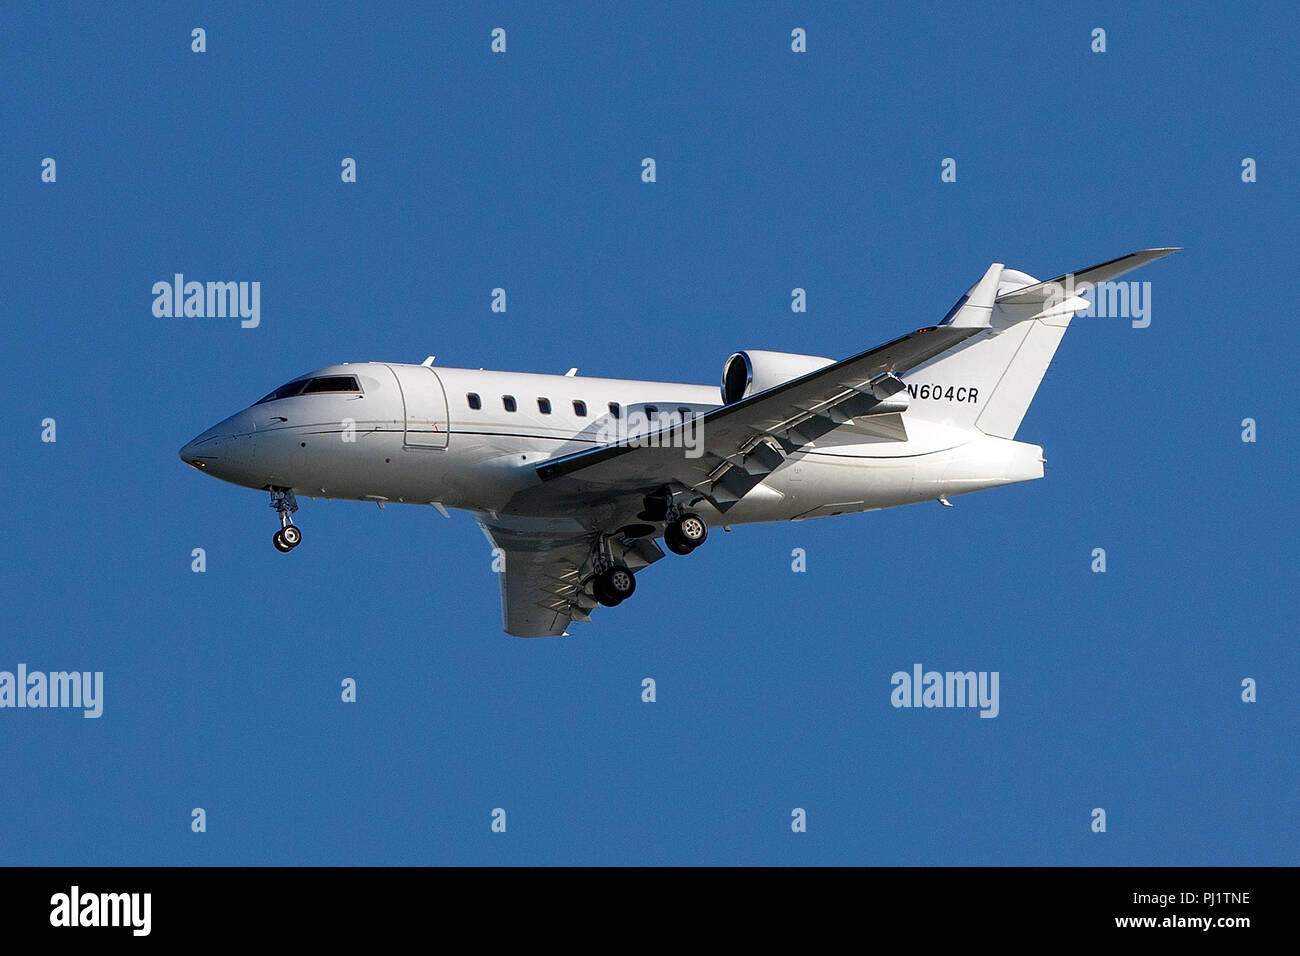 Bombardier CL-600-2B16 (N604CR) on approach to San Francisco International Airport (SFO), San Francisco, California, United States of America - Stock Image